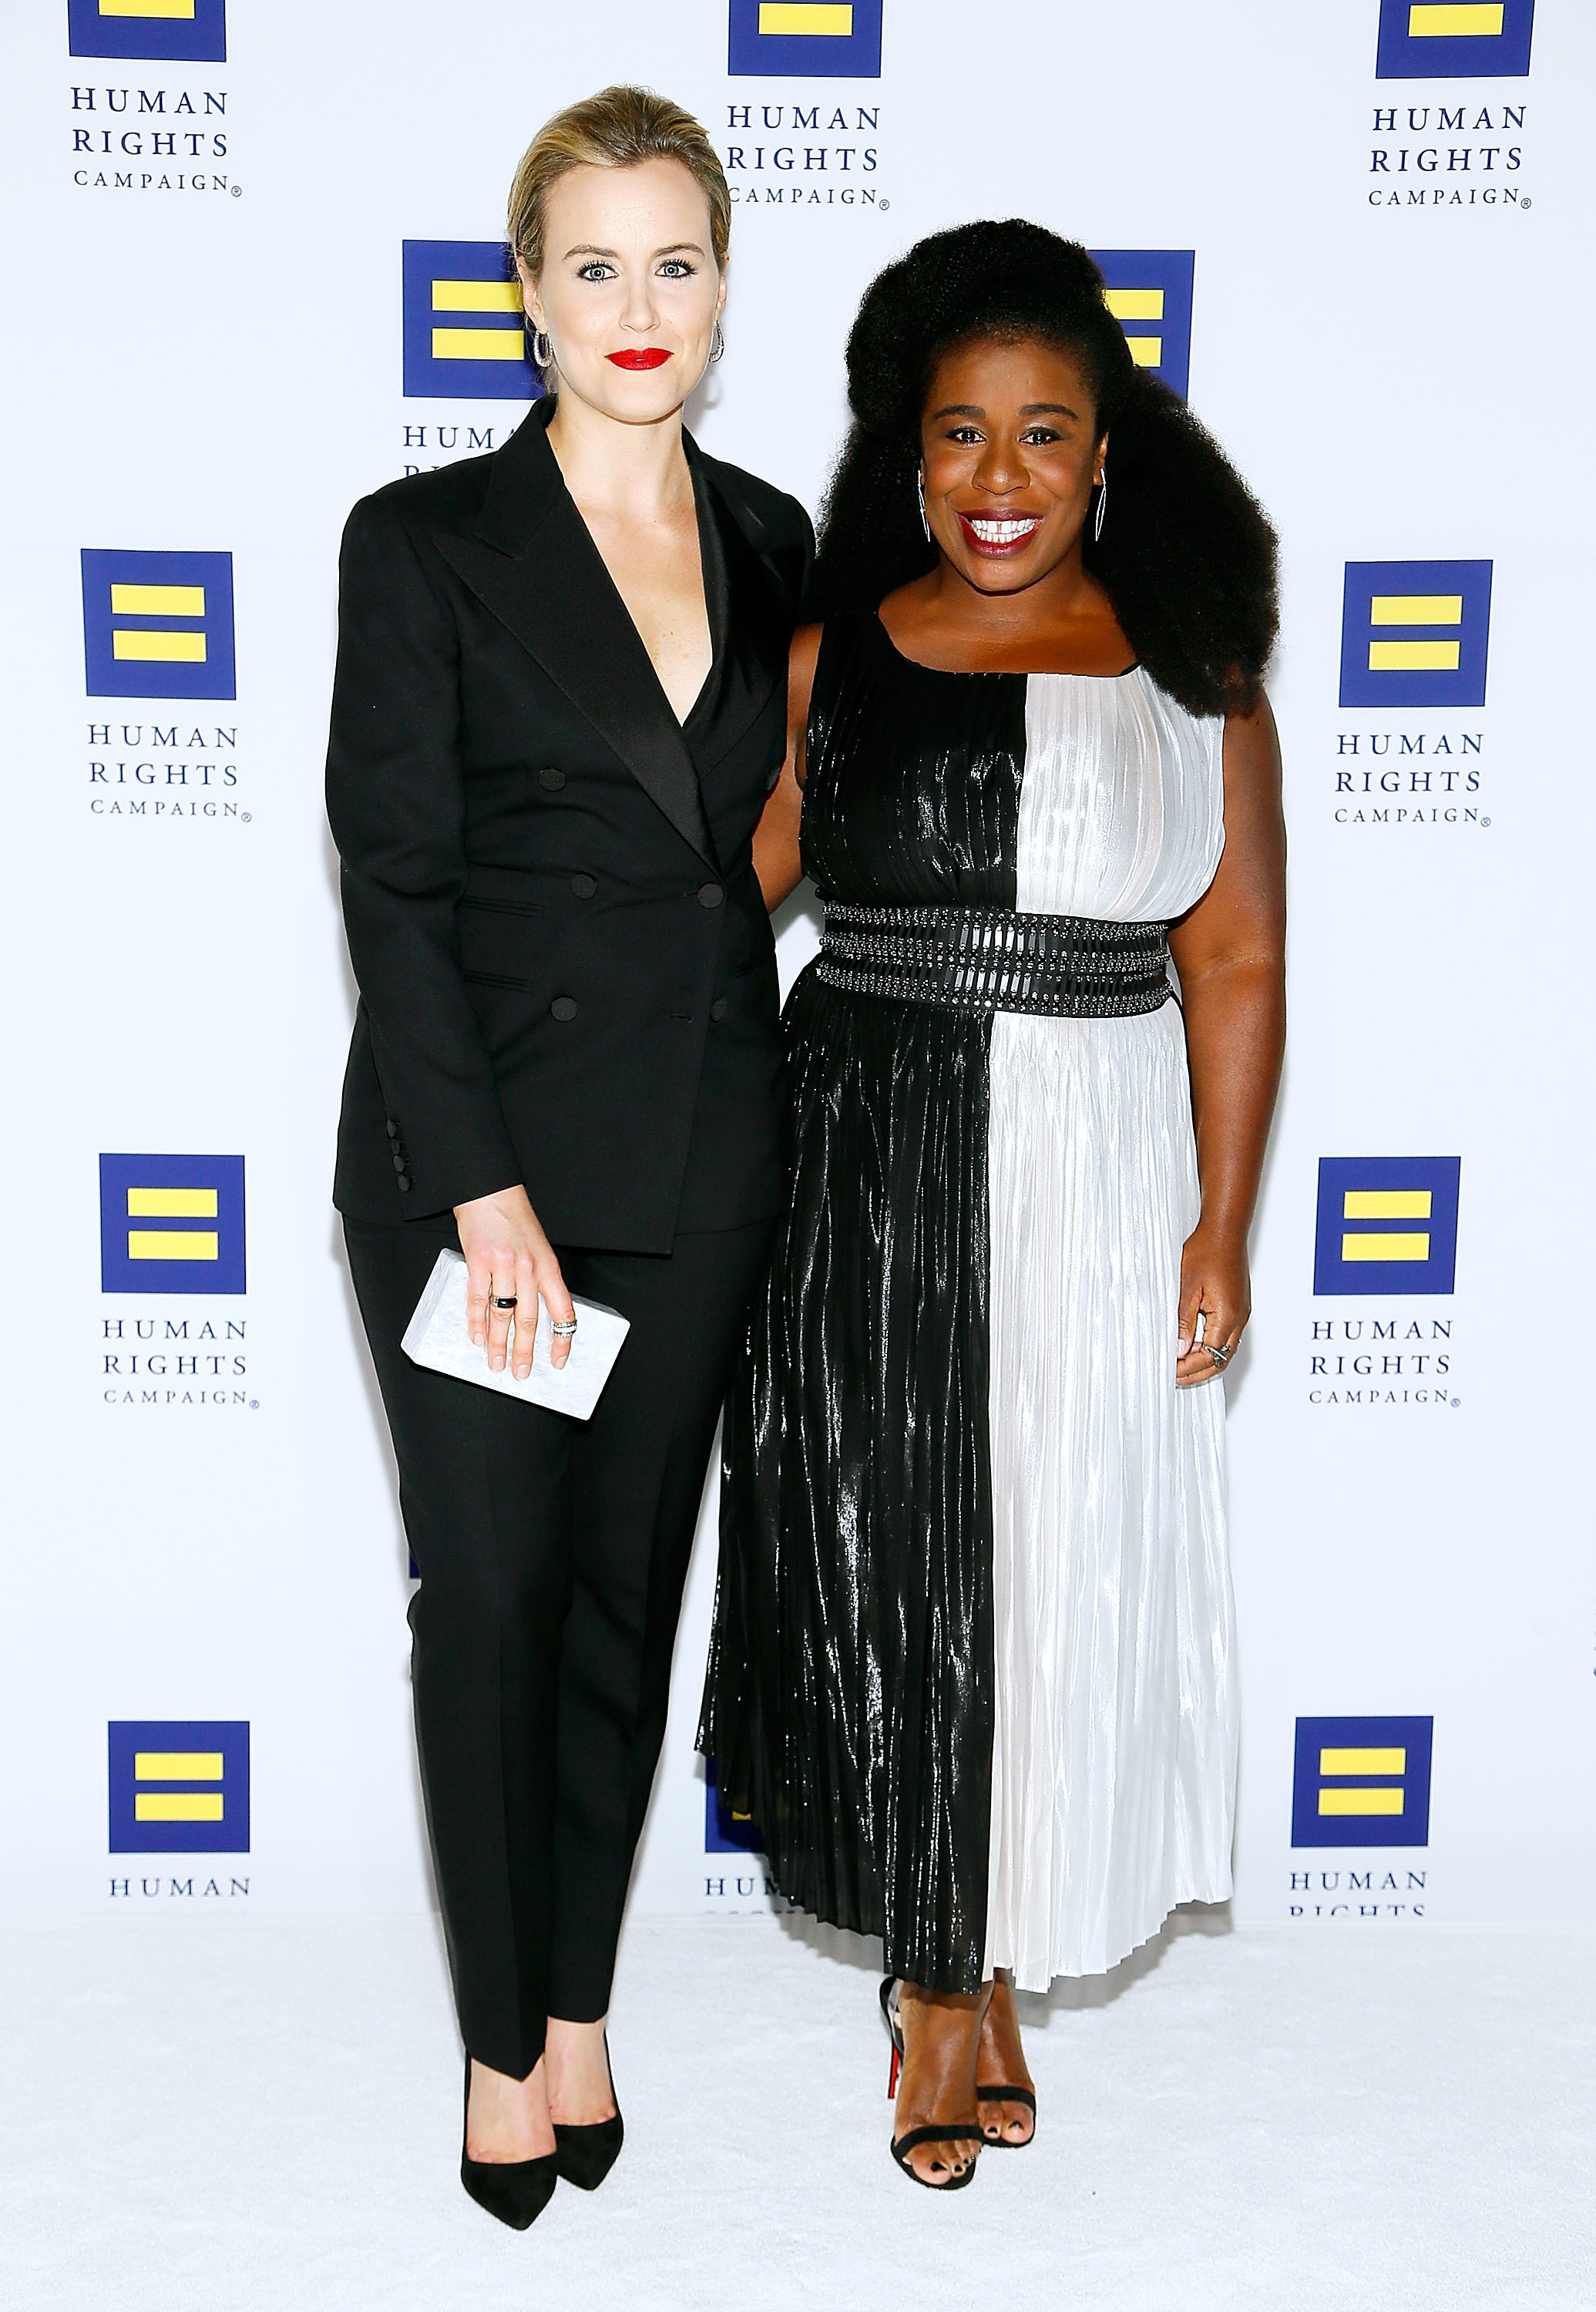 Taylor Schilling and Uzo Aduba attend the 21st Annual HRC National Dinner at the Washington Convention Center in Washington D.C. on Oct. 28, 2017.